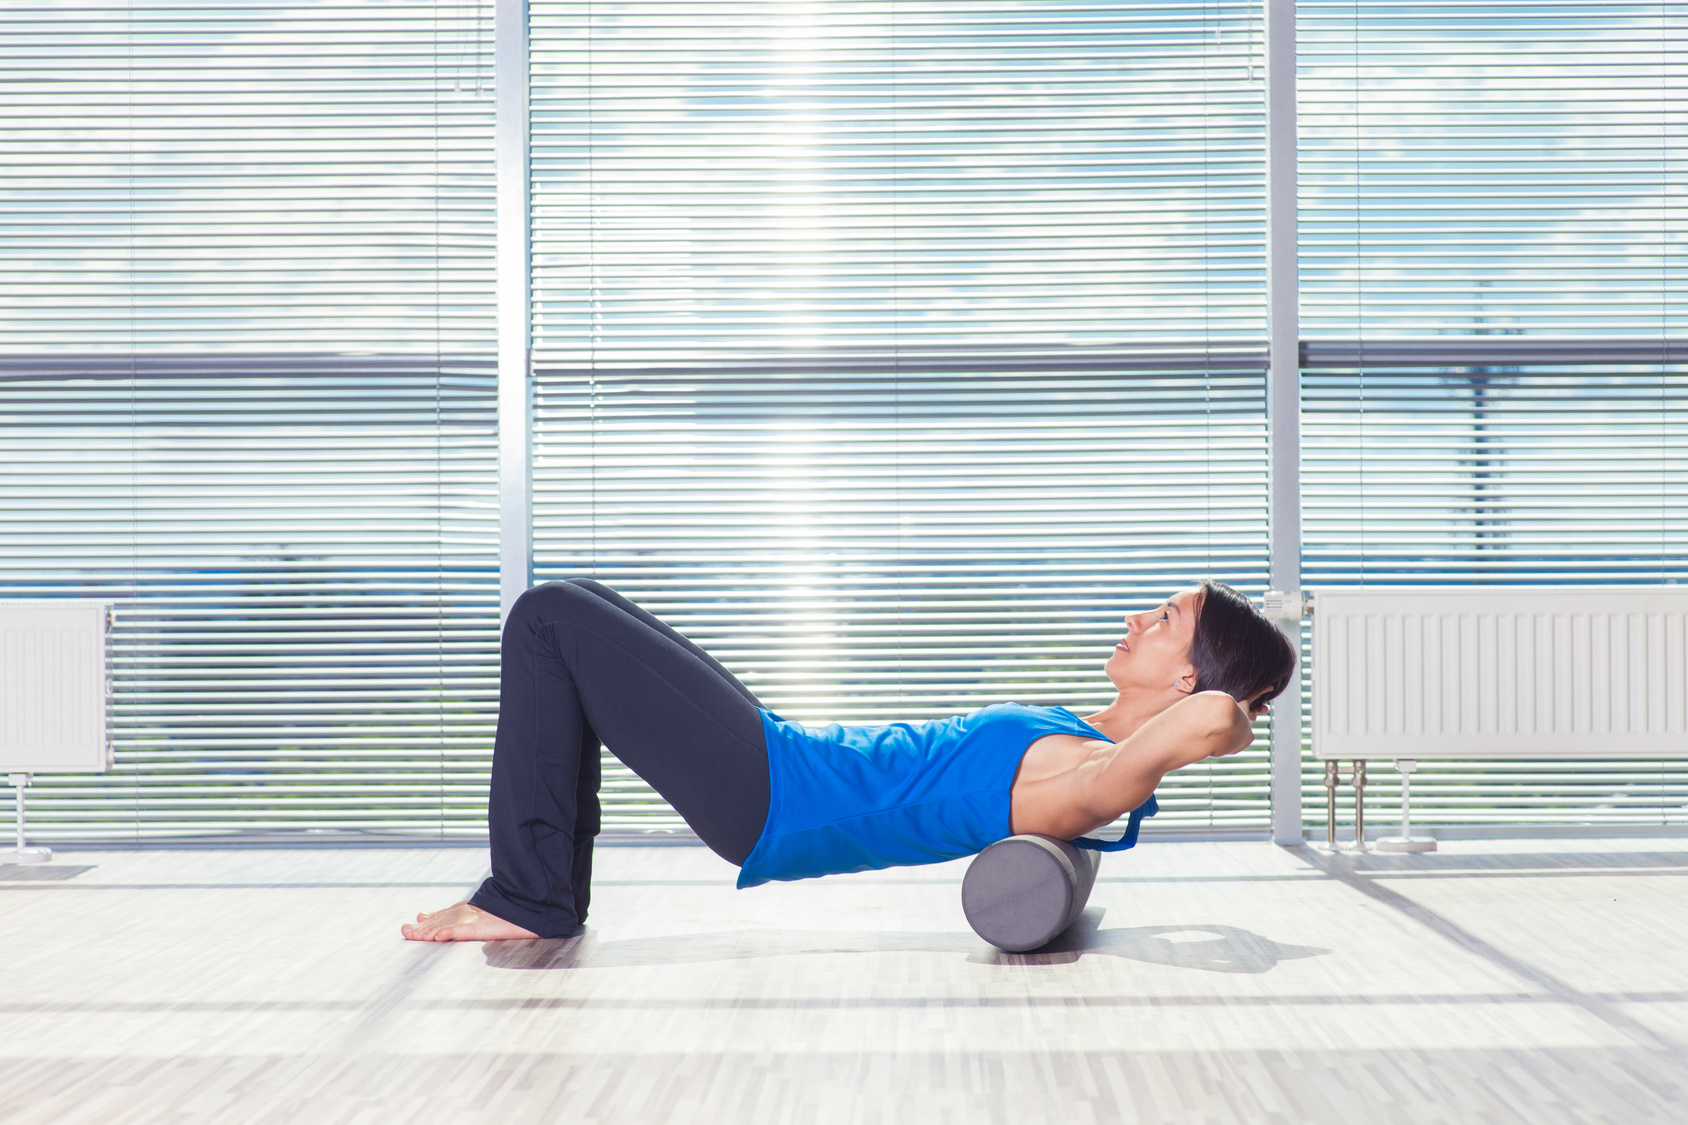 FOAM ROLL SERIES - Establishing a foam roll habit